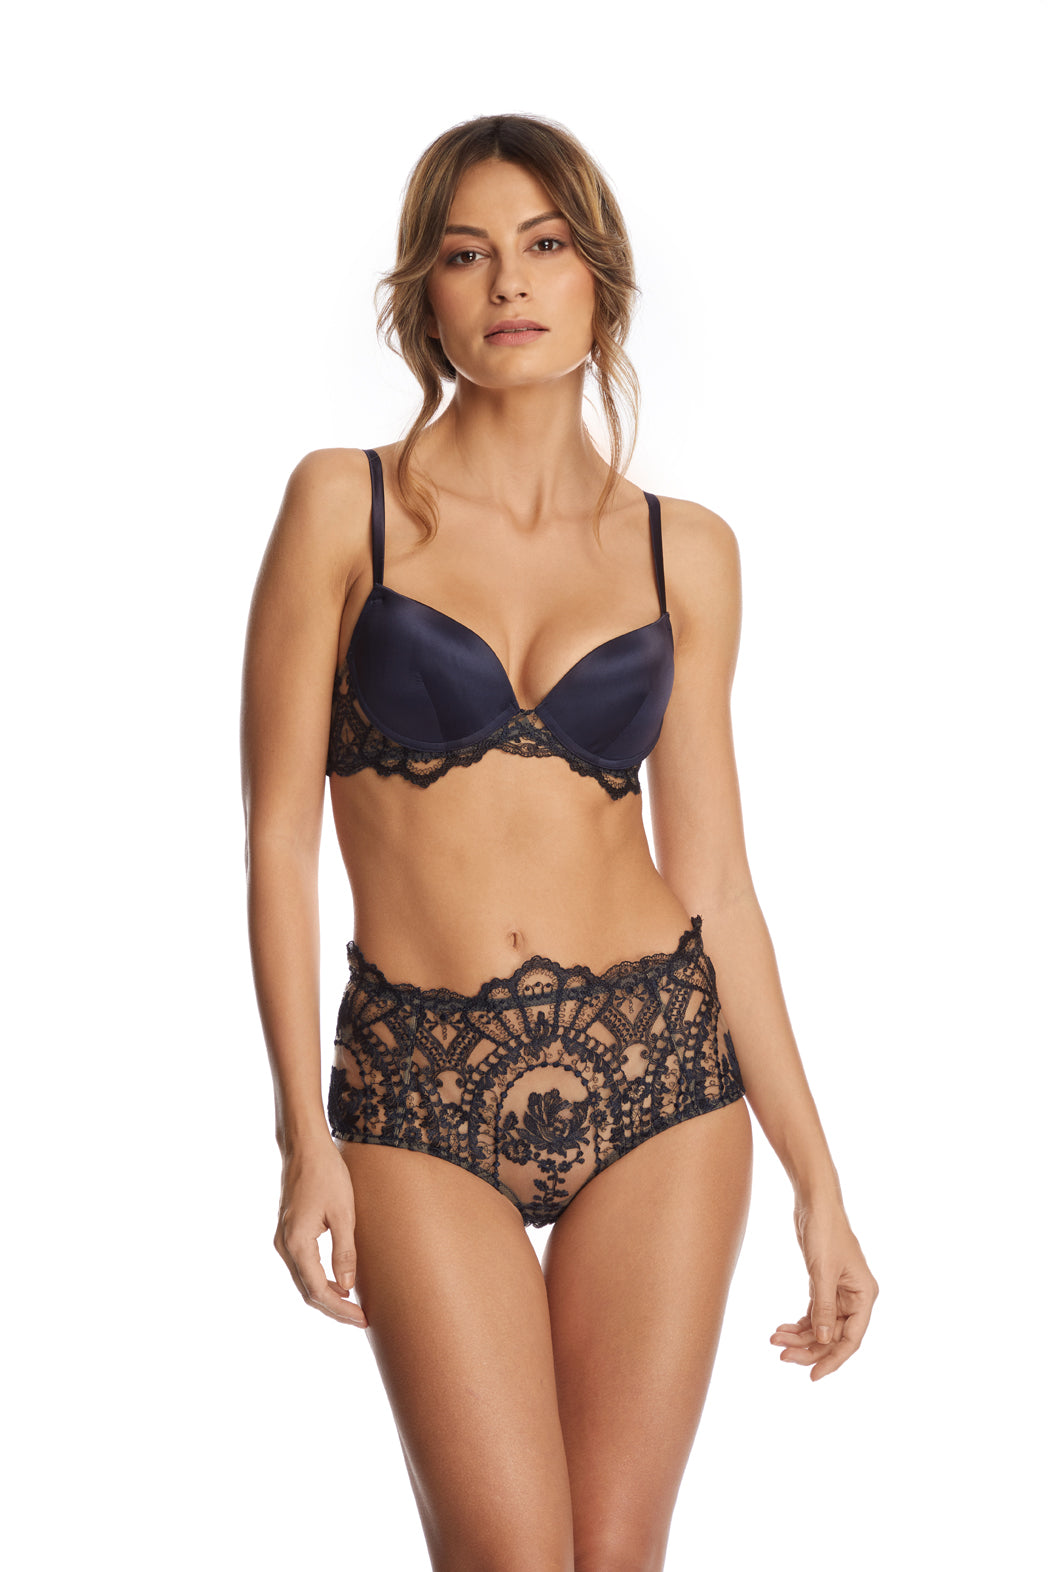 Desert Rose Push-Up Bra in Bleumarine